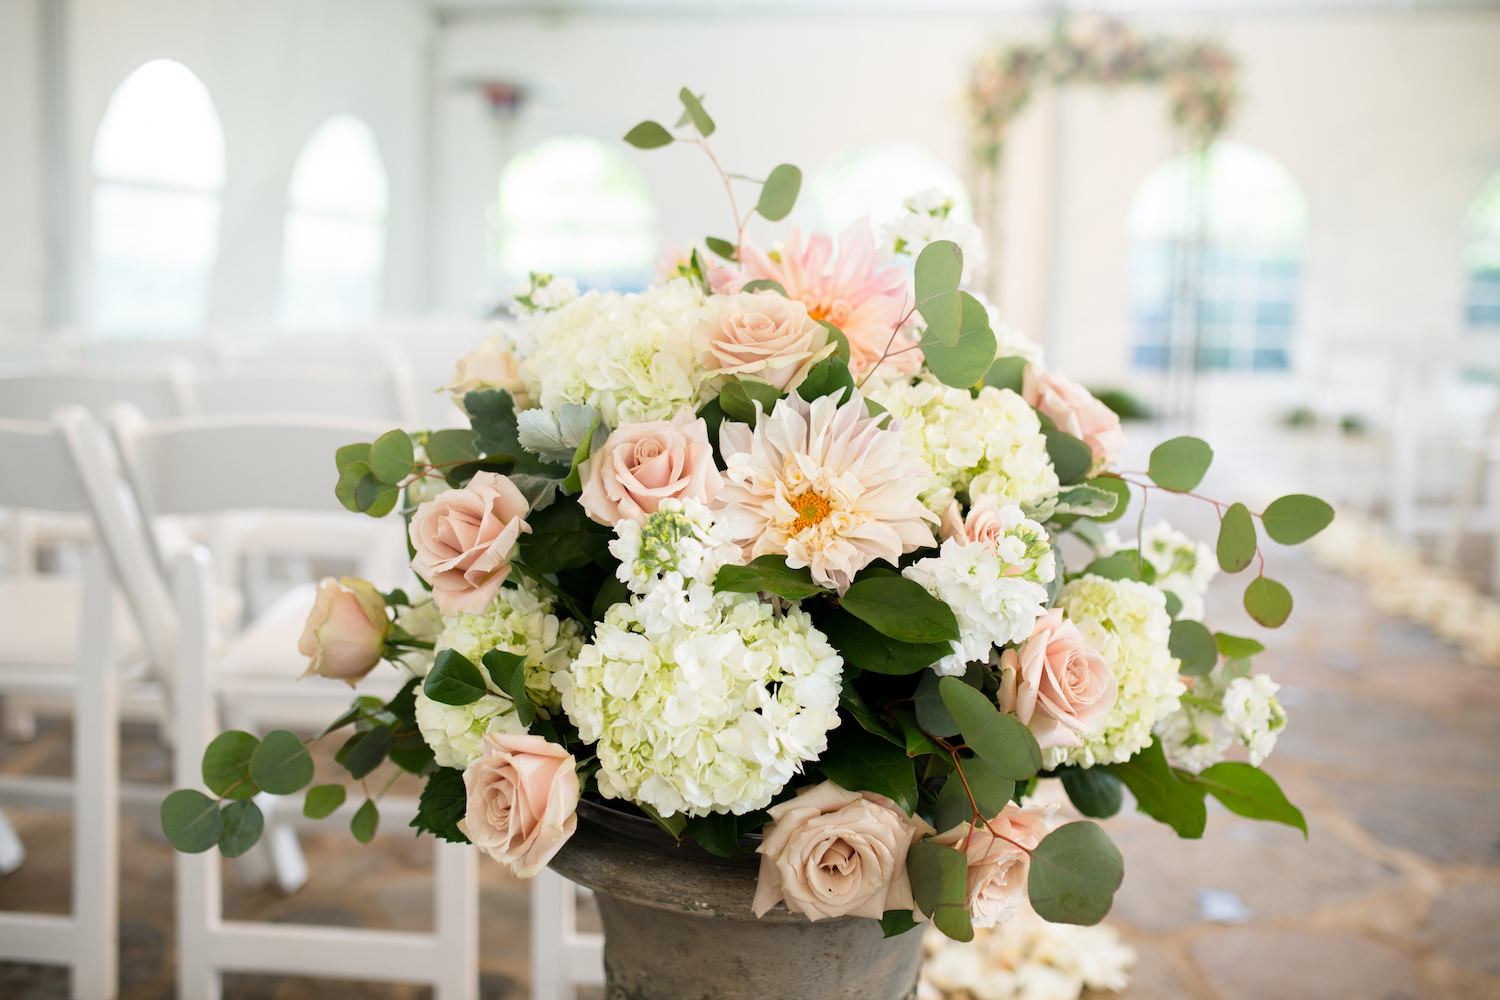 Stunning ceremony urn with Cafe Au Lait Dahlia's at Poplar Springs Inn. Photo by Lovesome Photography.